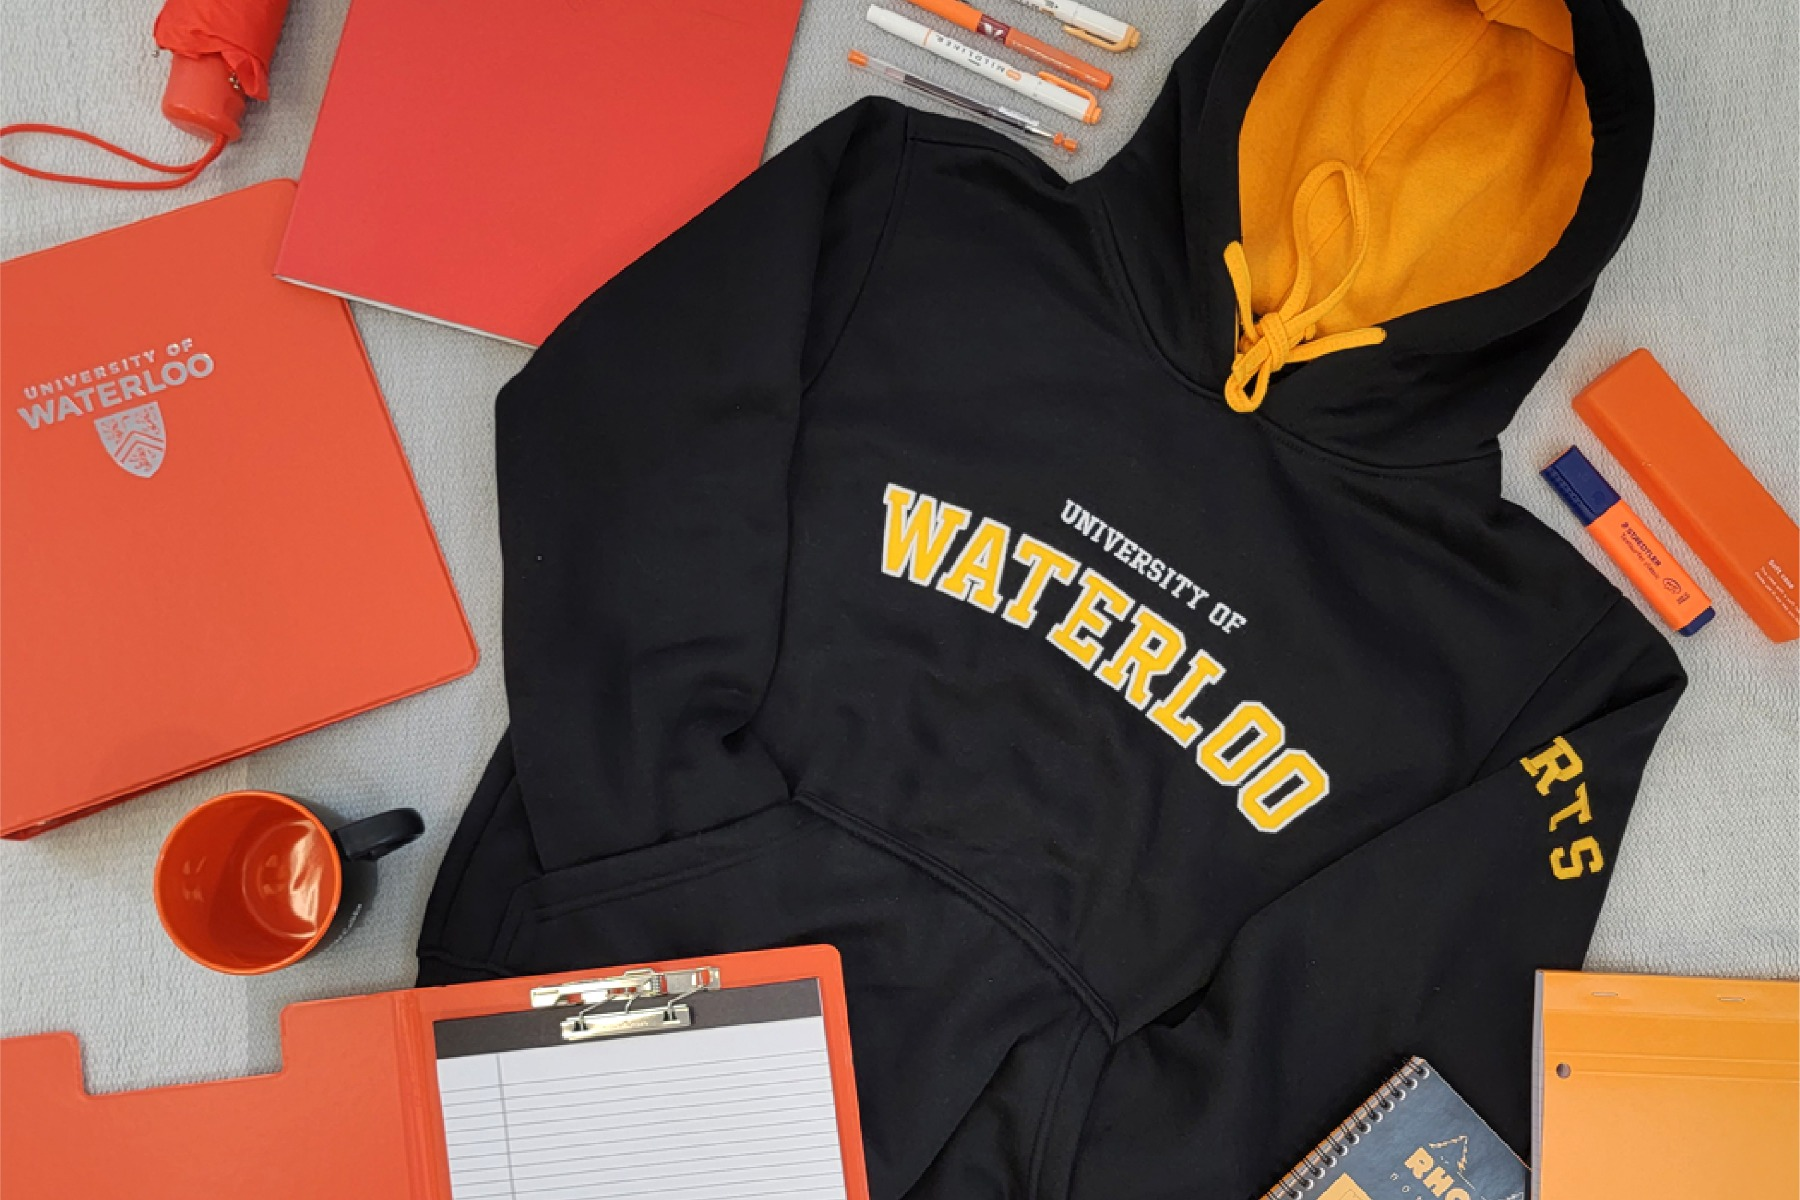 Arts faculty apparel and orange items